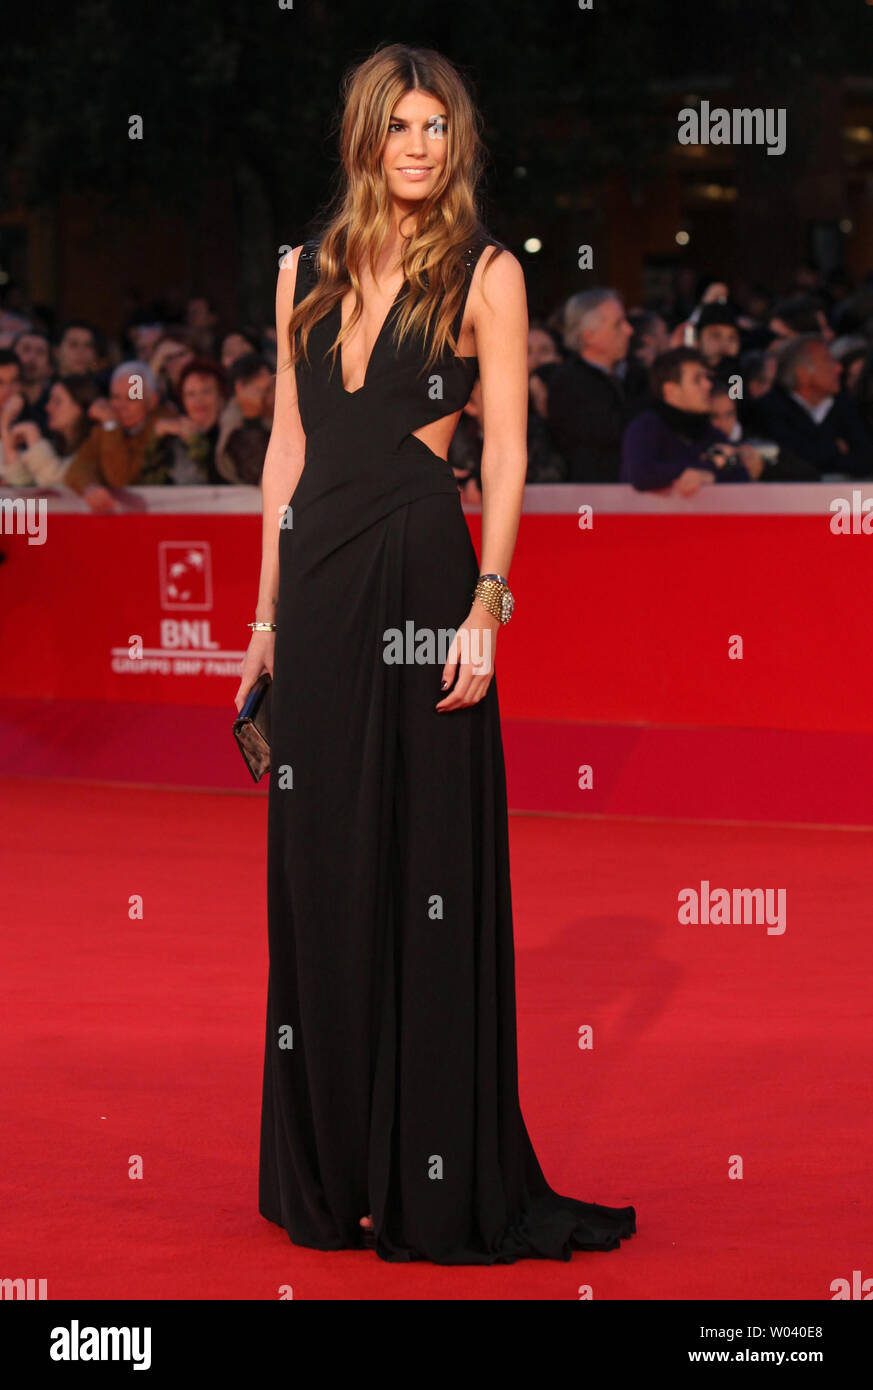 Bianca Brandolini D'Adda arrives on the red carpet before the screening of a digitally restored version of the 1960 classic film 'La Dolce Vita' during the 5th Rome International Film Festival in Rome on October 30, 2010.   UPI/David Silpa - Stock Image